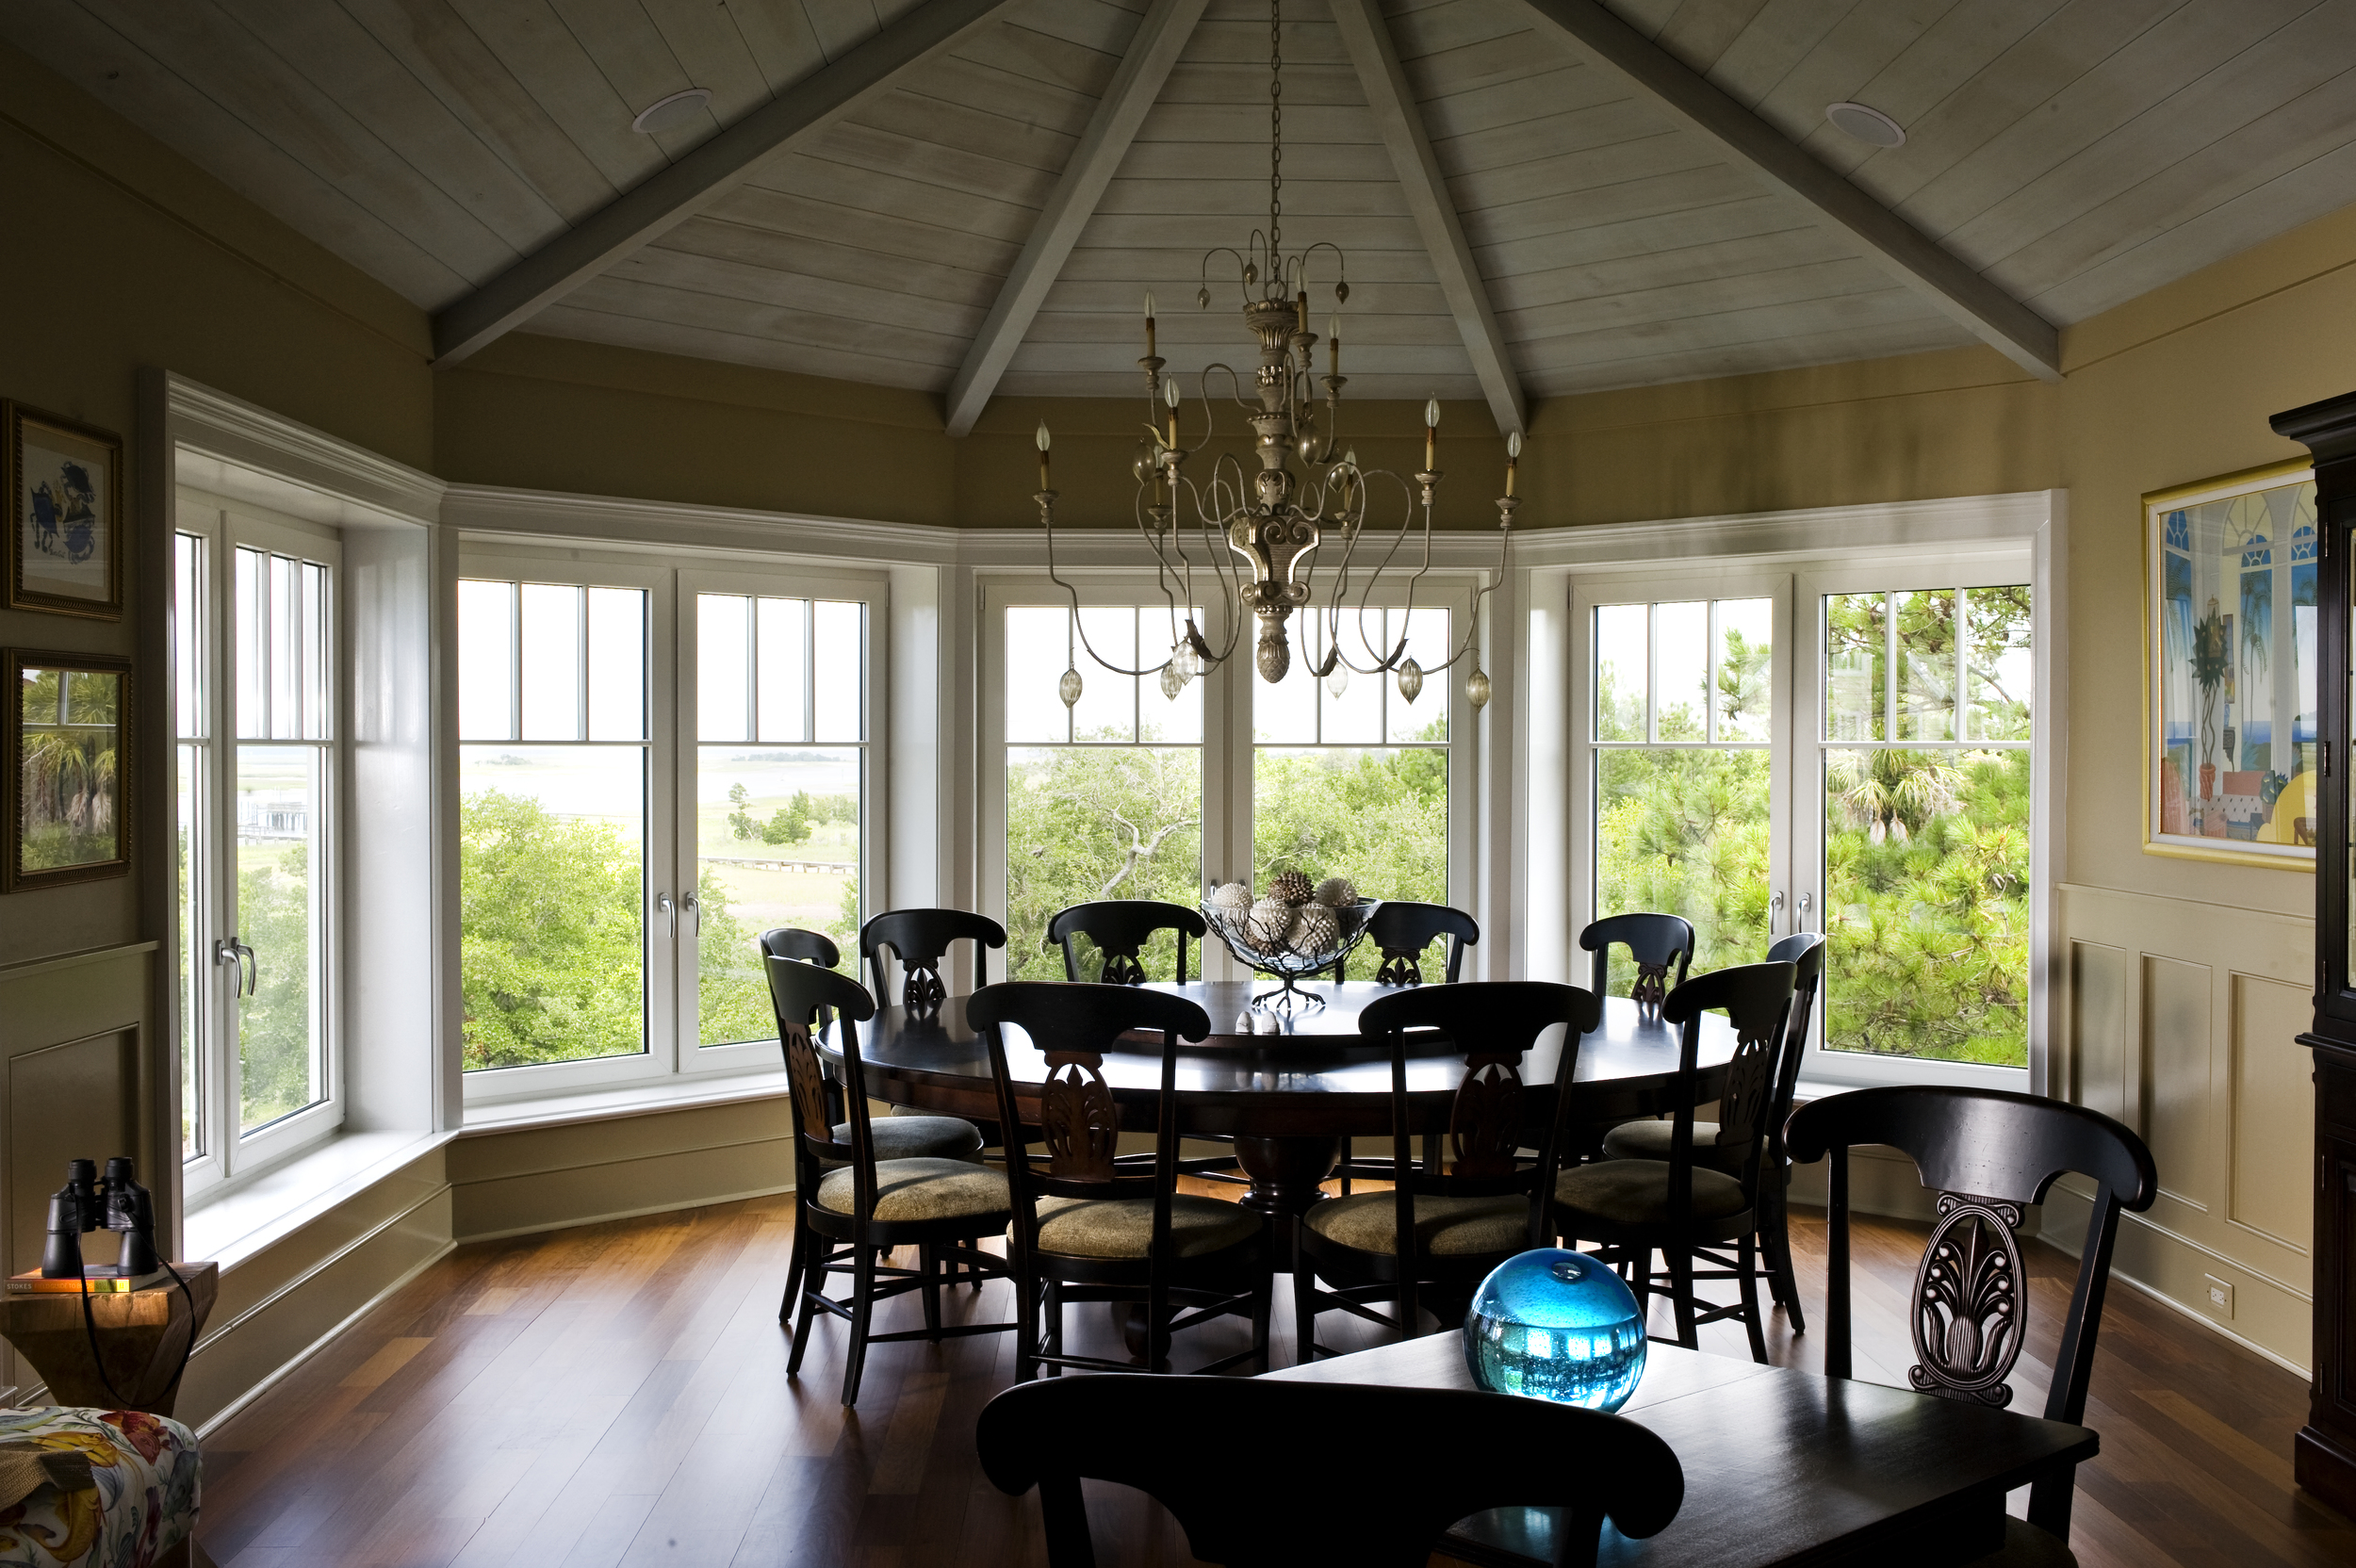 French Casement Windows in a Bow